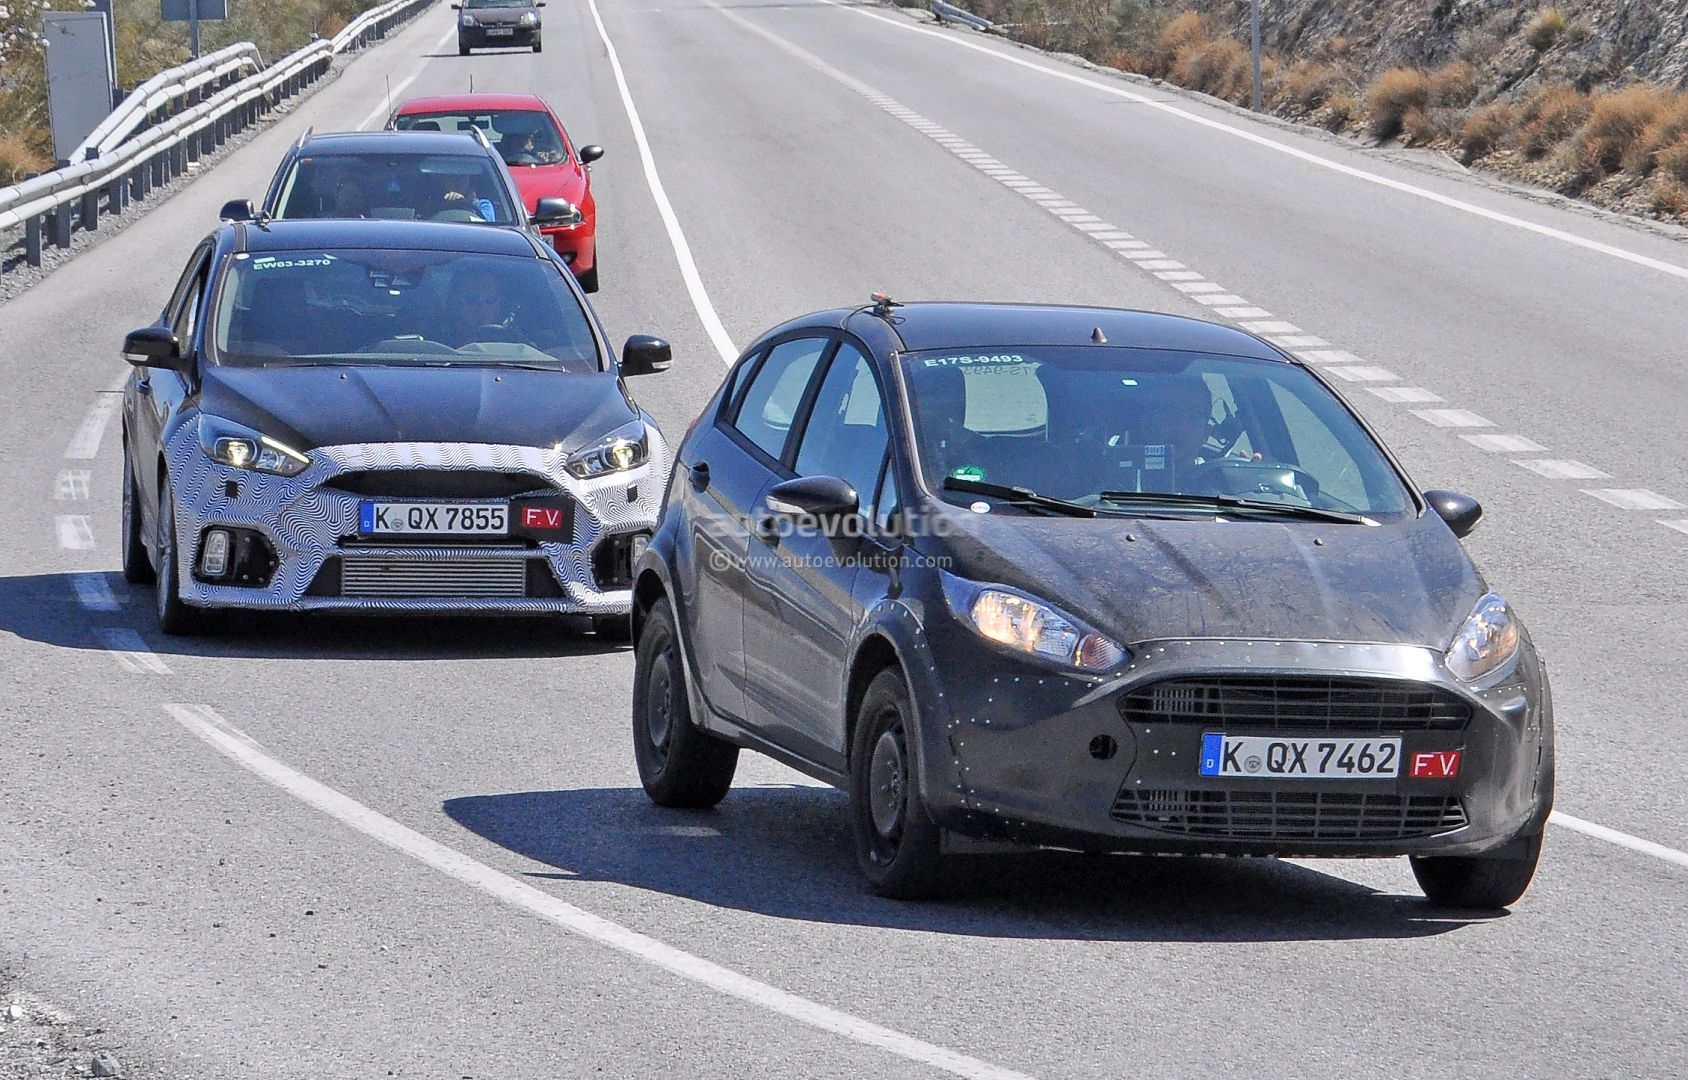 Ford Fiesta Rs 2017 >> 2017 Ford Fiesta Rs Spied For The First Time Autoevolution